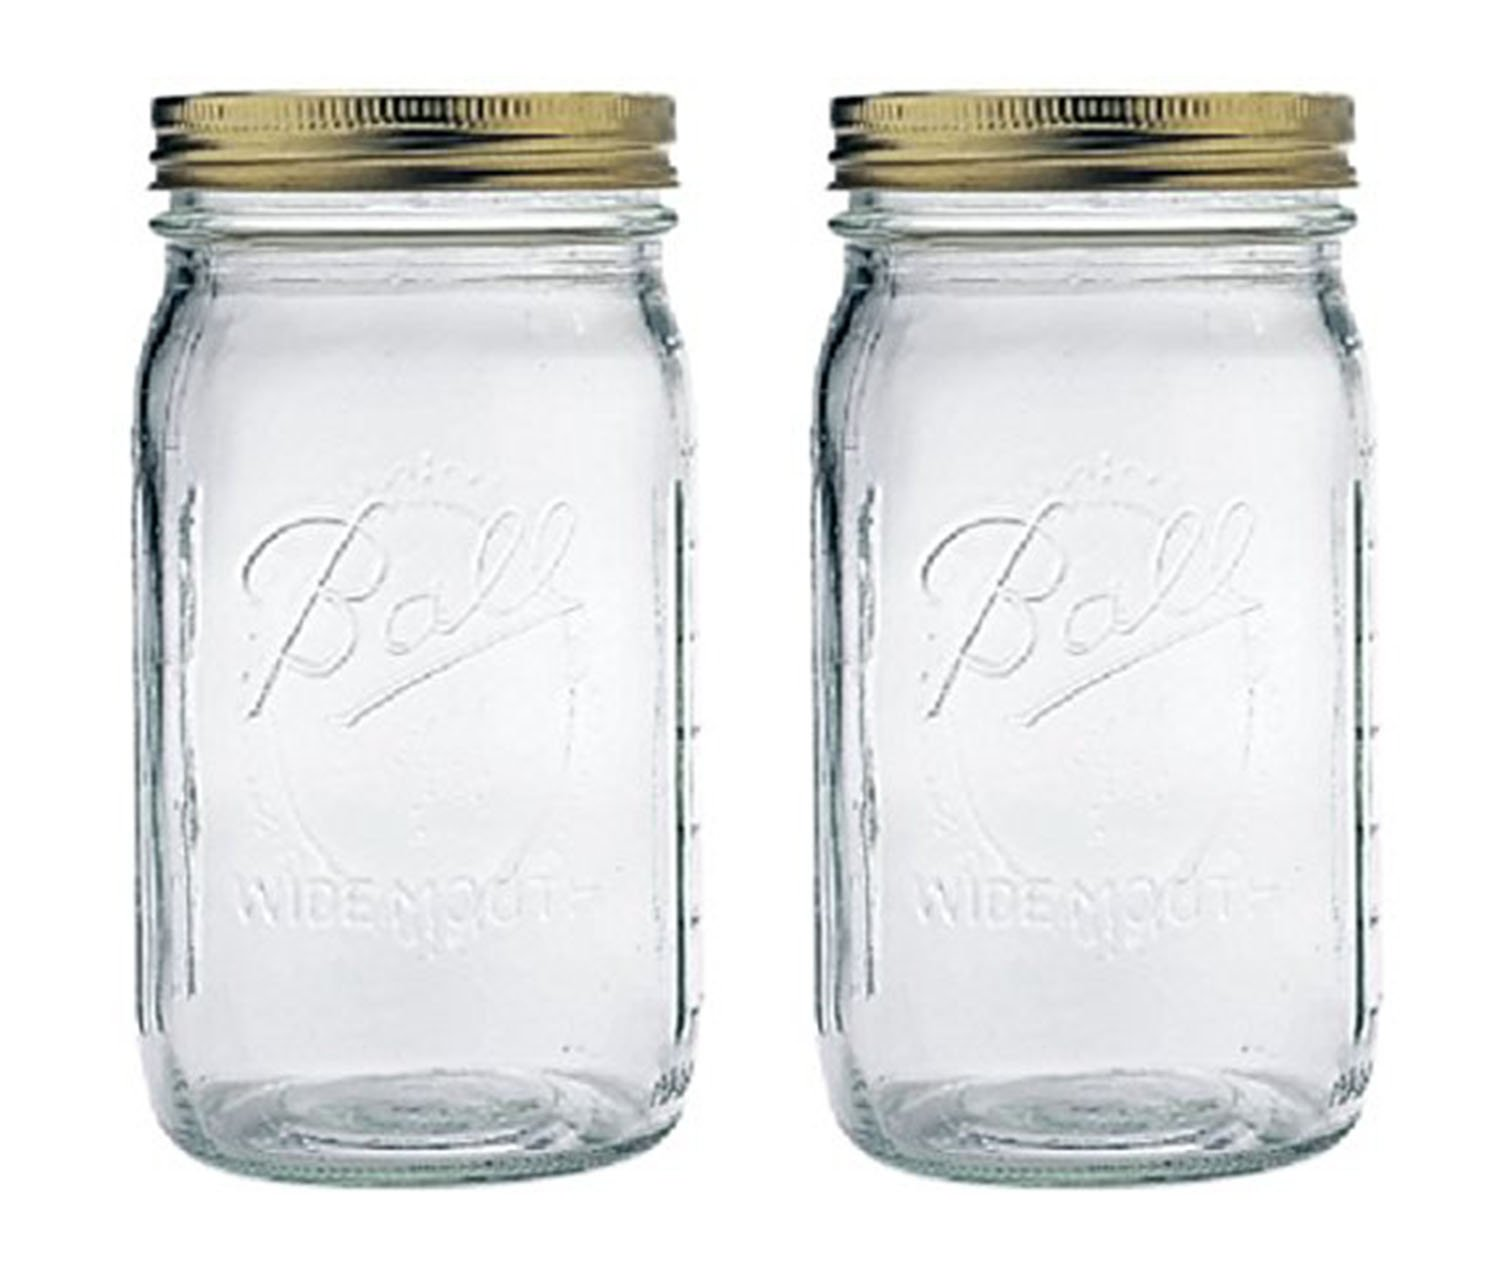 32 oz wide mouth mason jars - Amazon Com 1 Ball Mason Jar Wide Mouth 32 Oz Quart With Lid And Band Clear Kitchen Dining